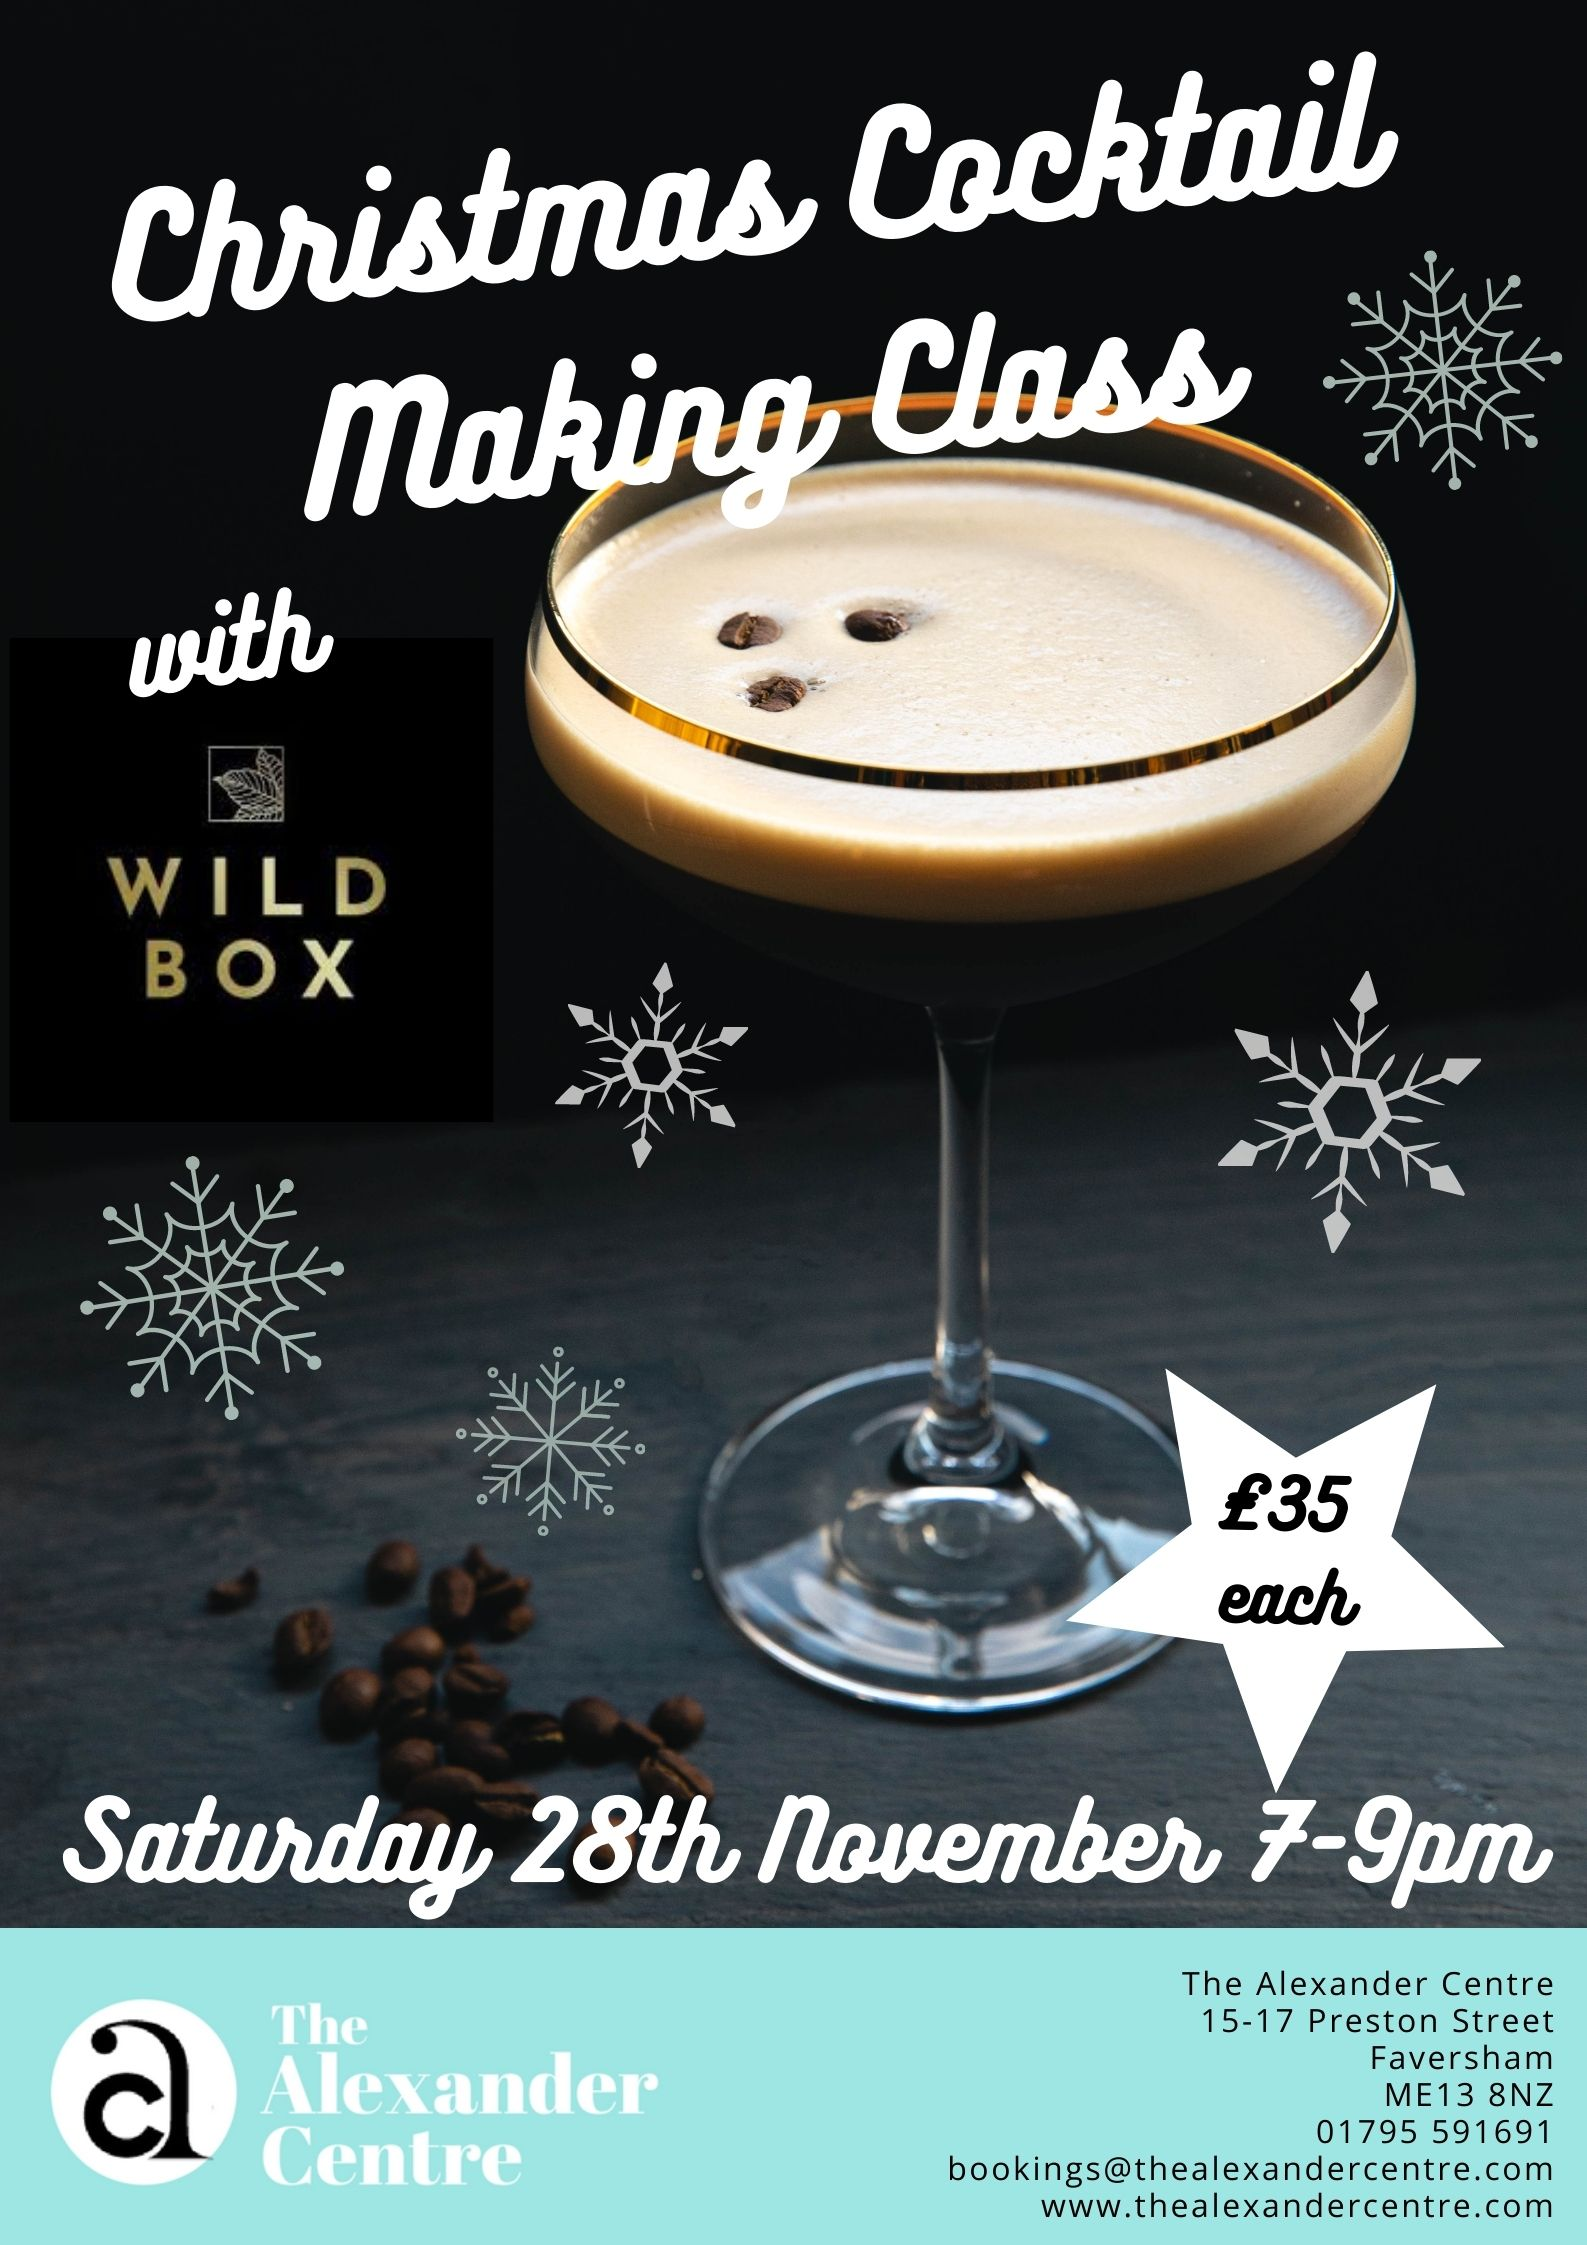 Christmas Cocktail Making Class